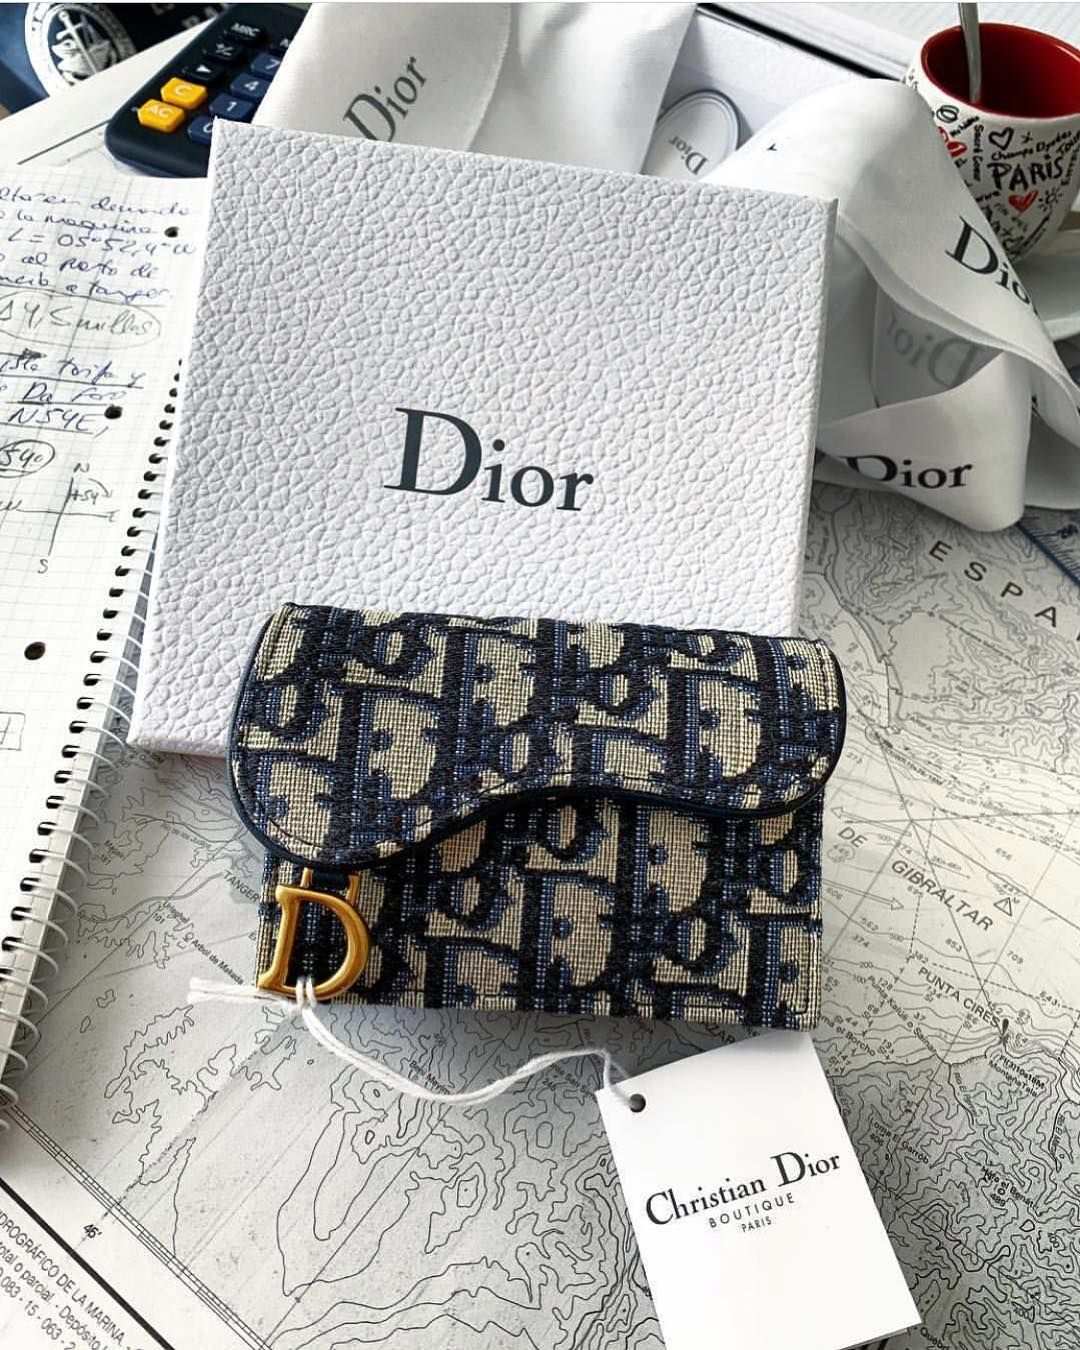 Dior Fan Page On Instagram Details Dior Dioraddicted Diorlover Diorlife Luxury Goals Lifegoals Follow Luxurylifestyle Bags Purses And Bags Dior